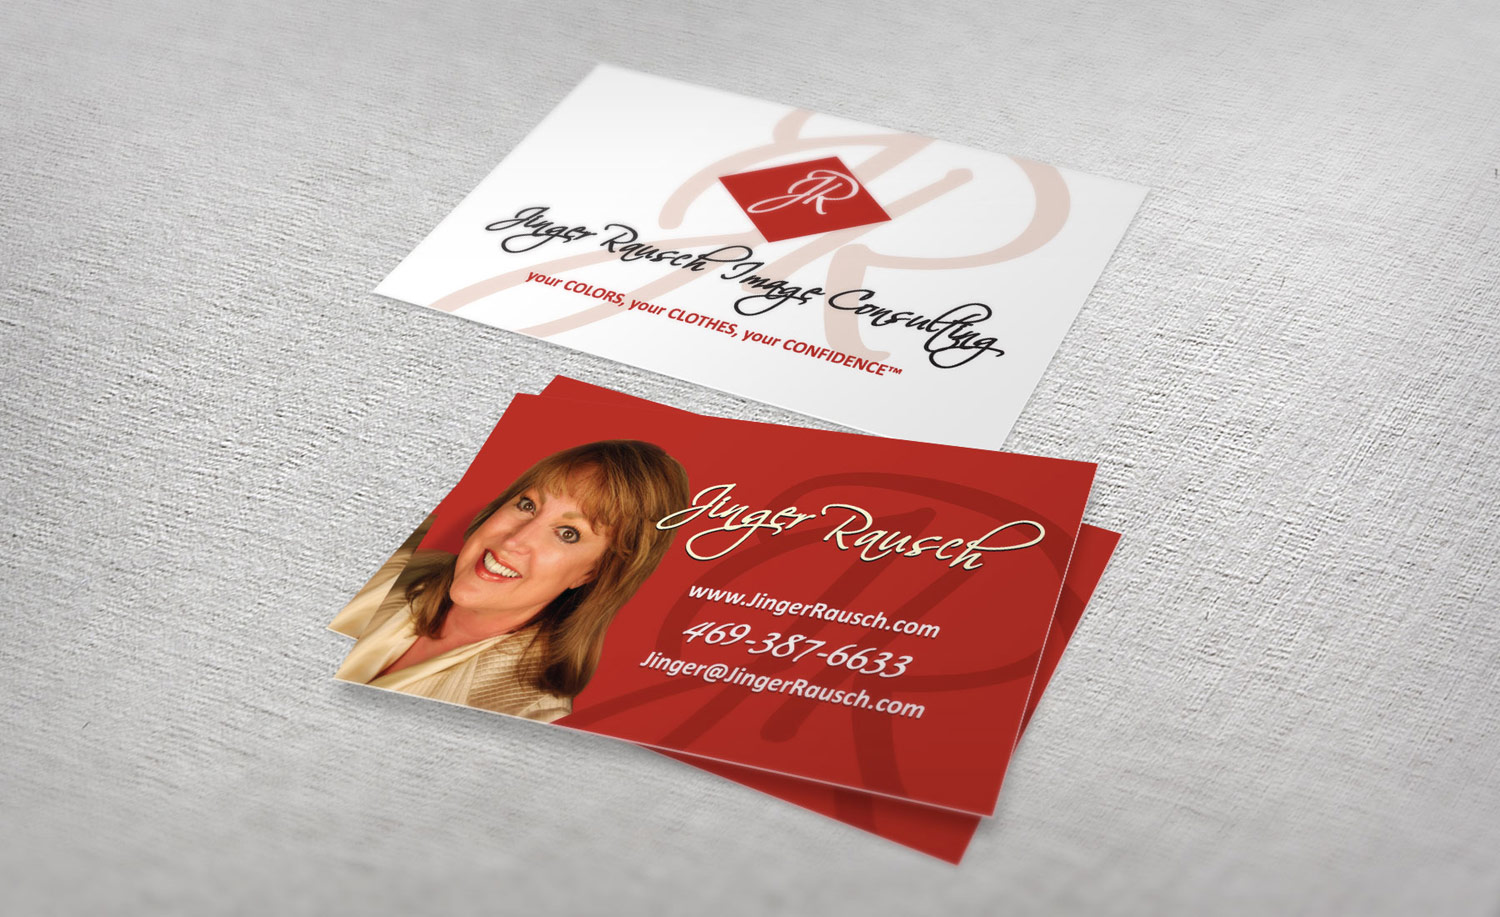 Business cards pr incorporated jinger rausch bcards magicingreecefo Images